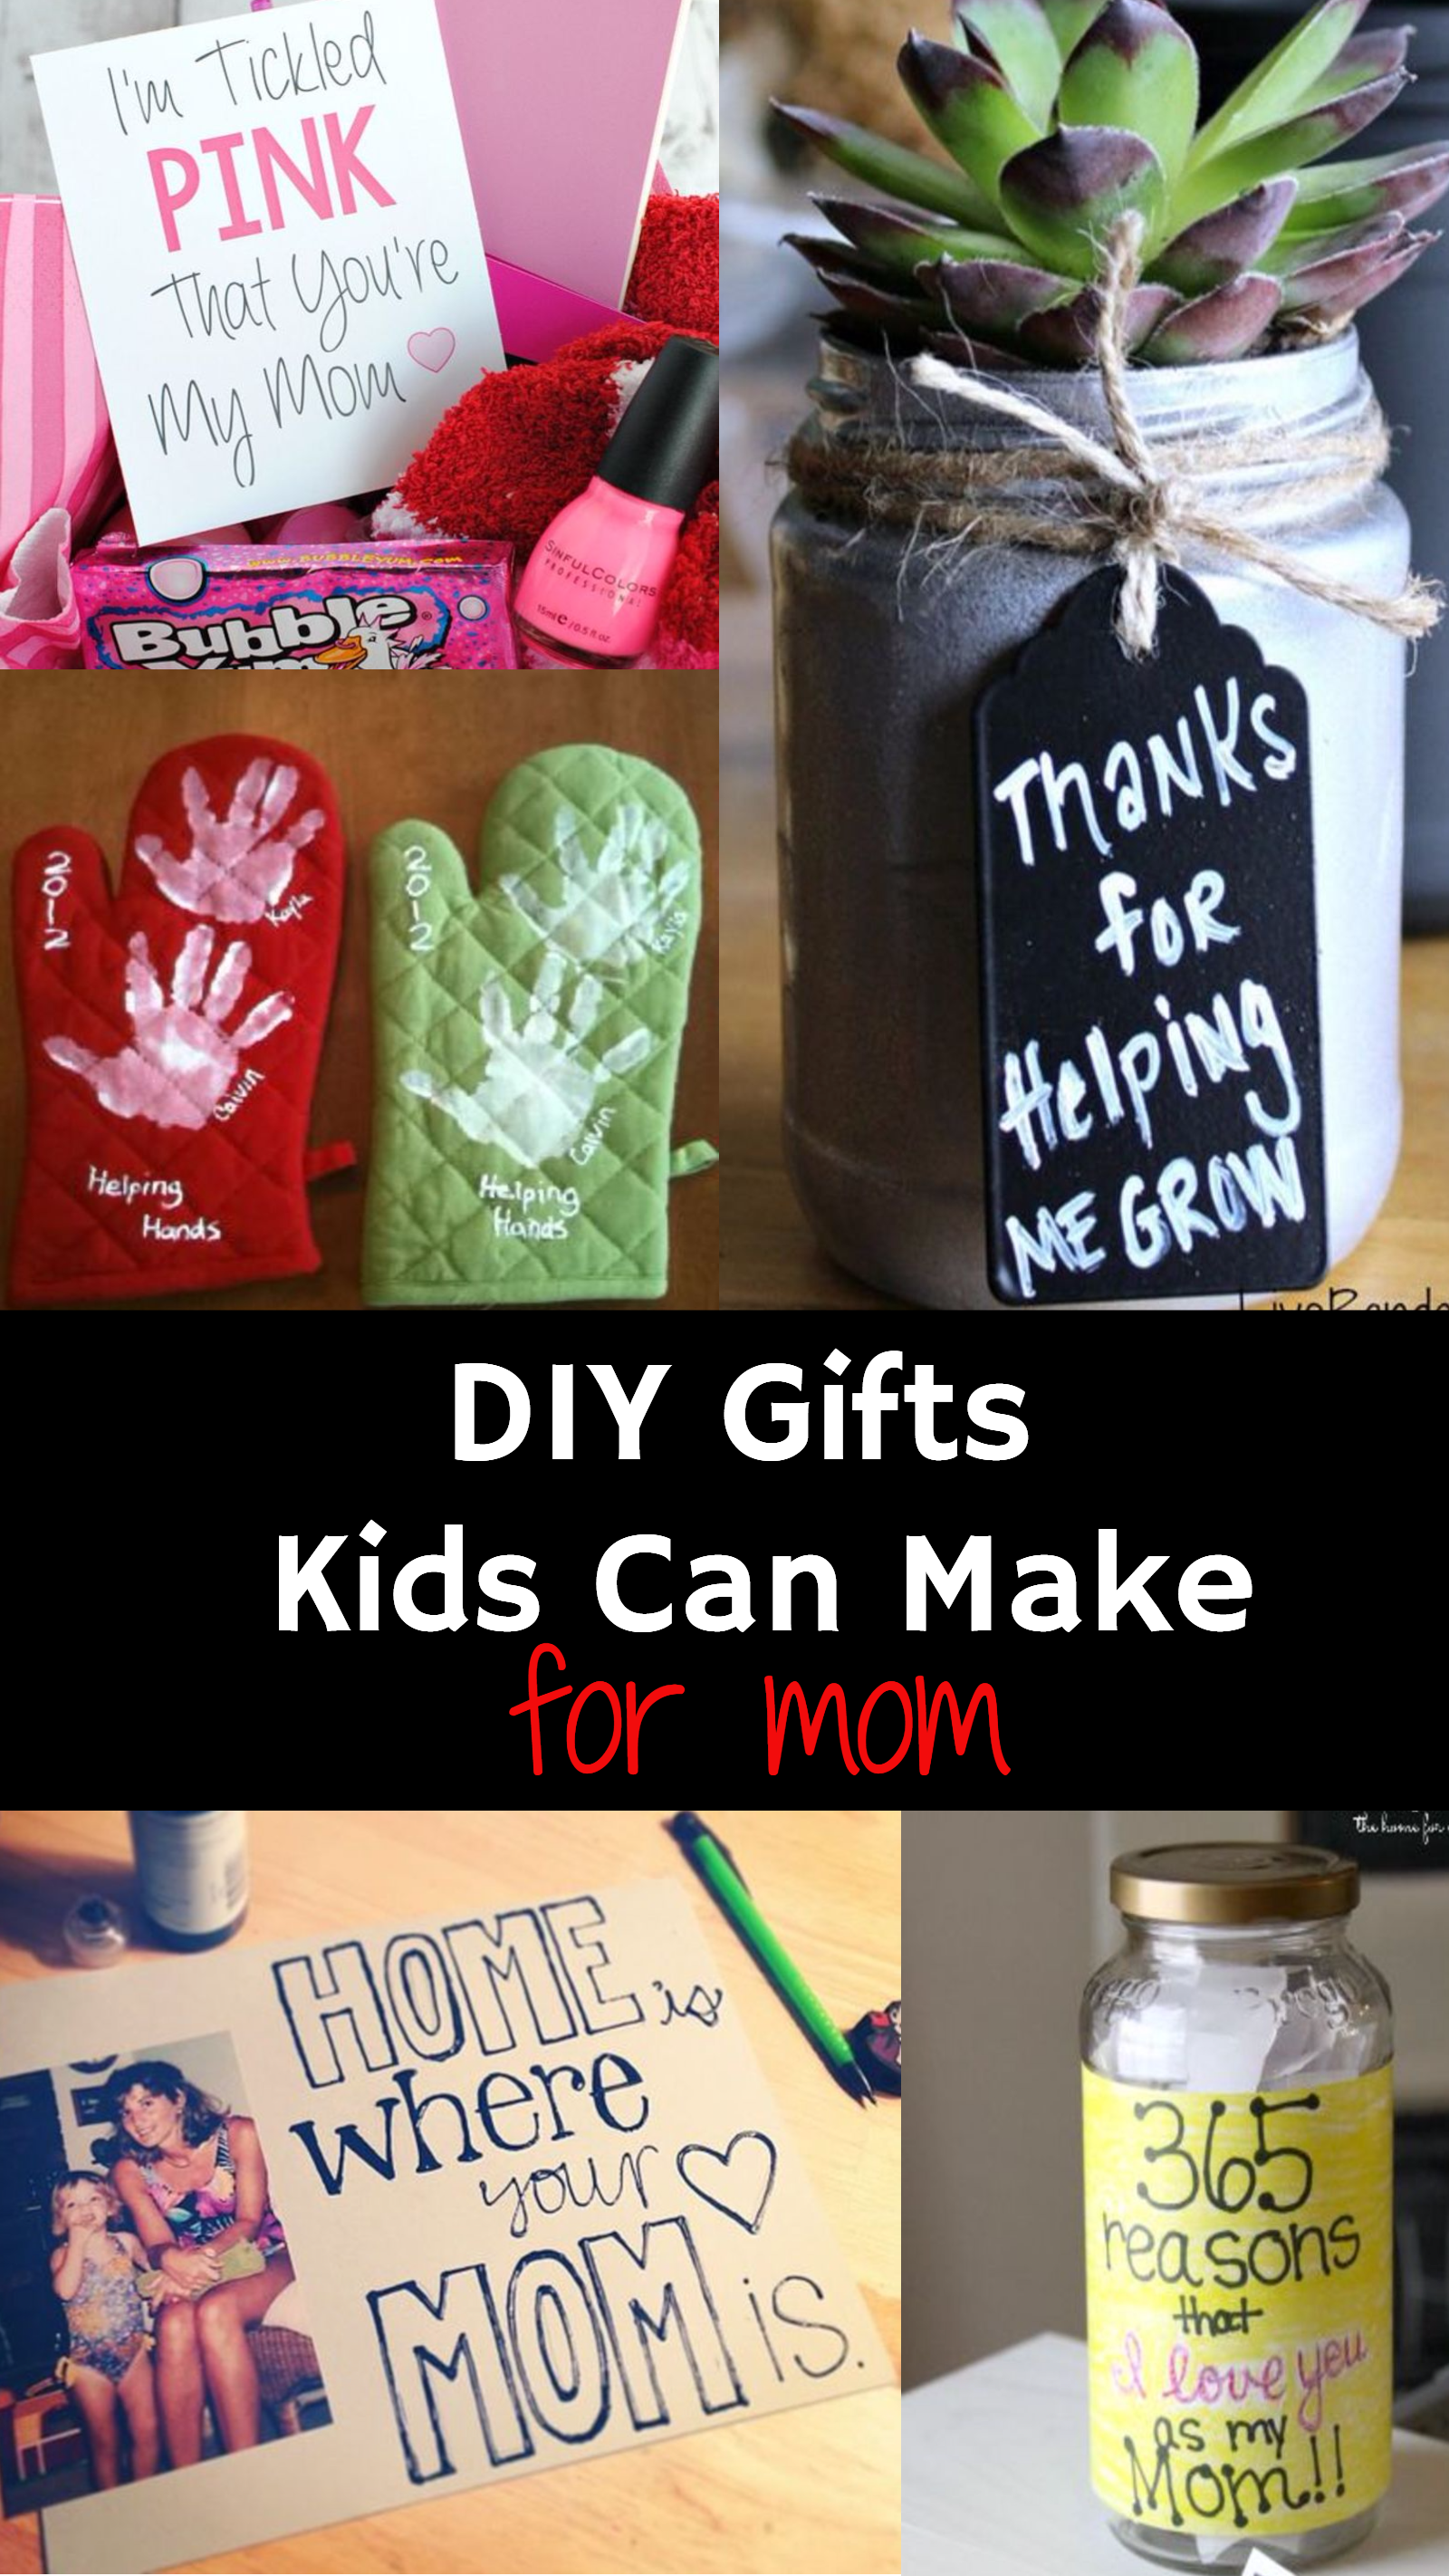 Pinterest home xmas gifts for kids to make